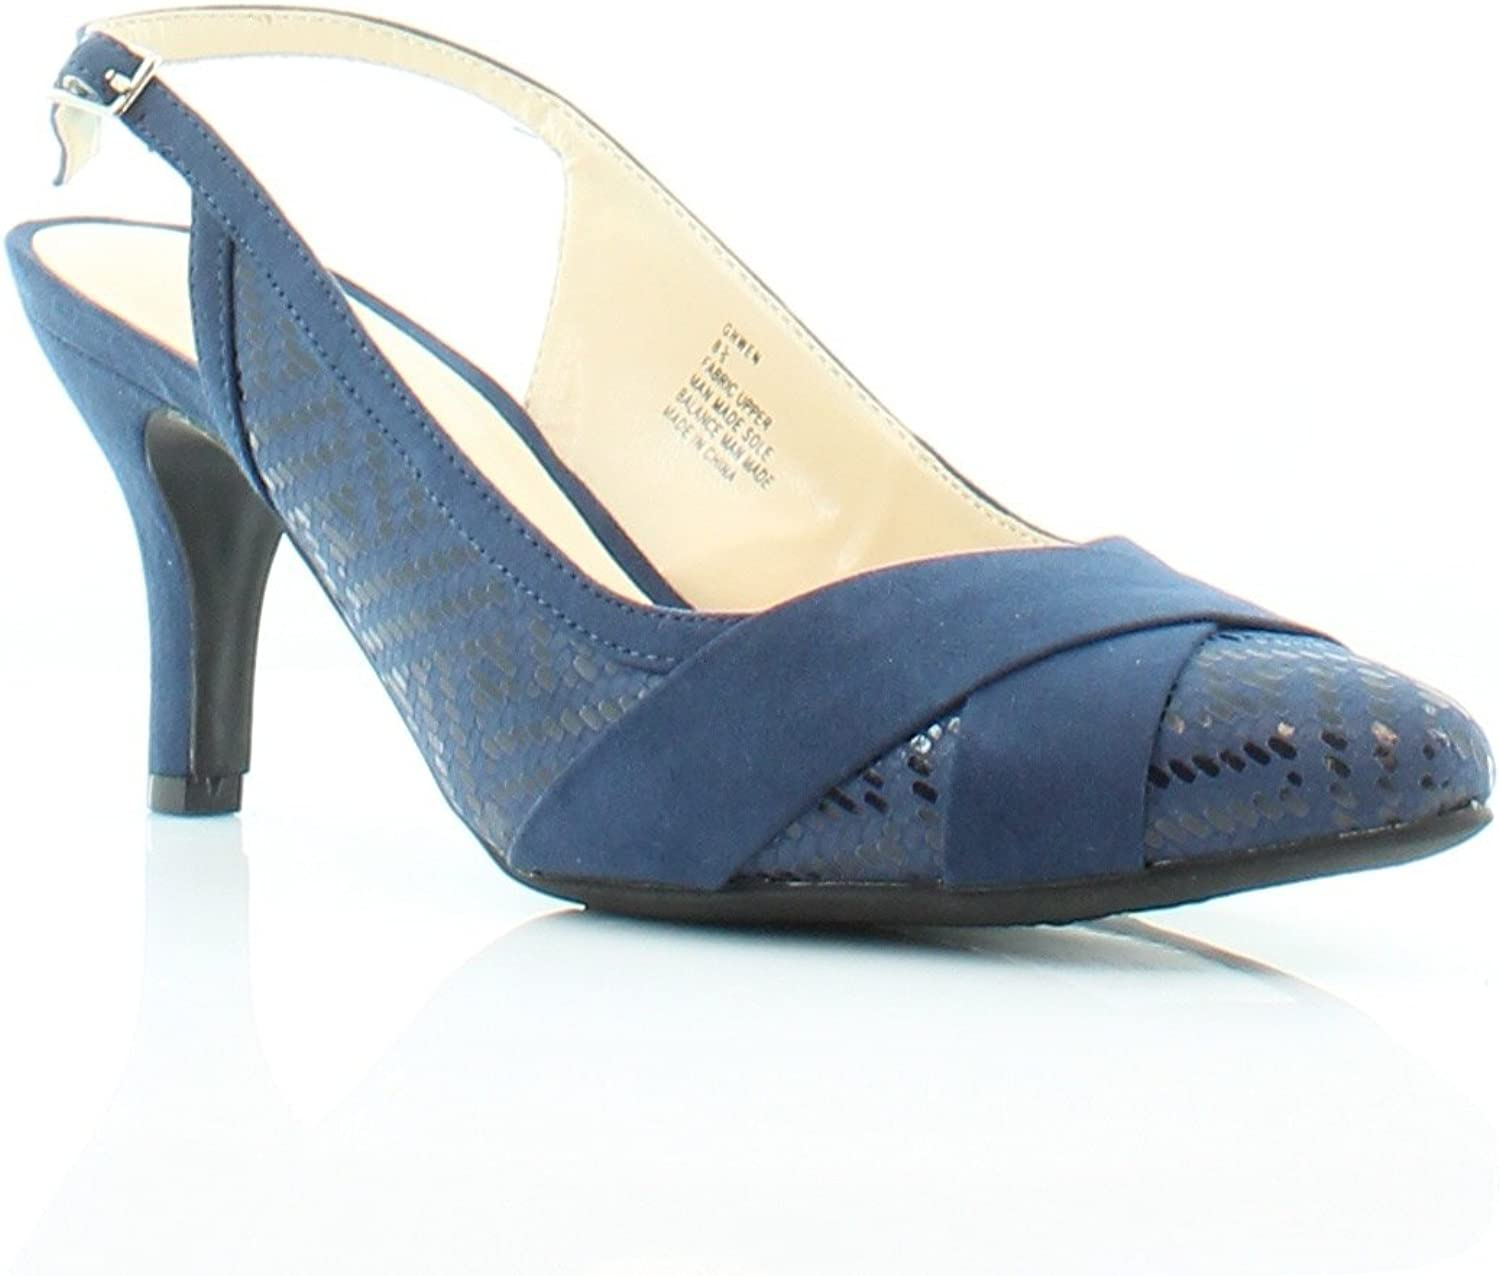 Karen Scott Ghwen Pointed-Toe Pumps Navy 8.5M